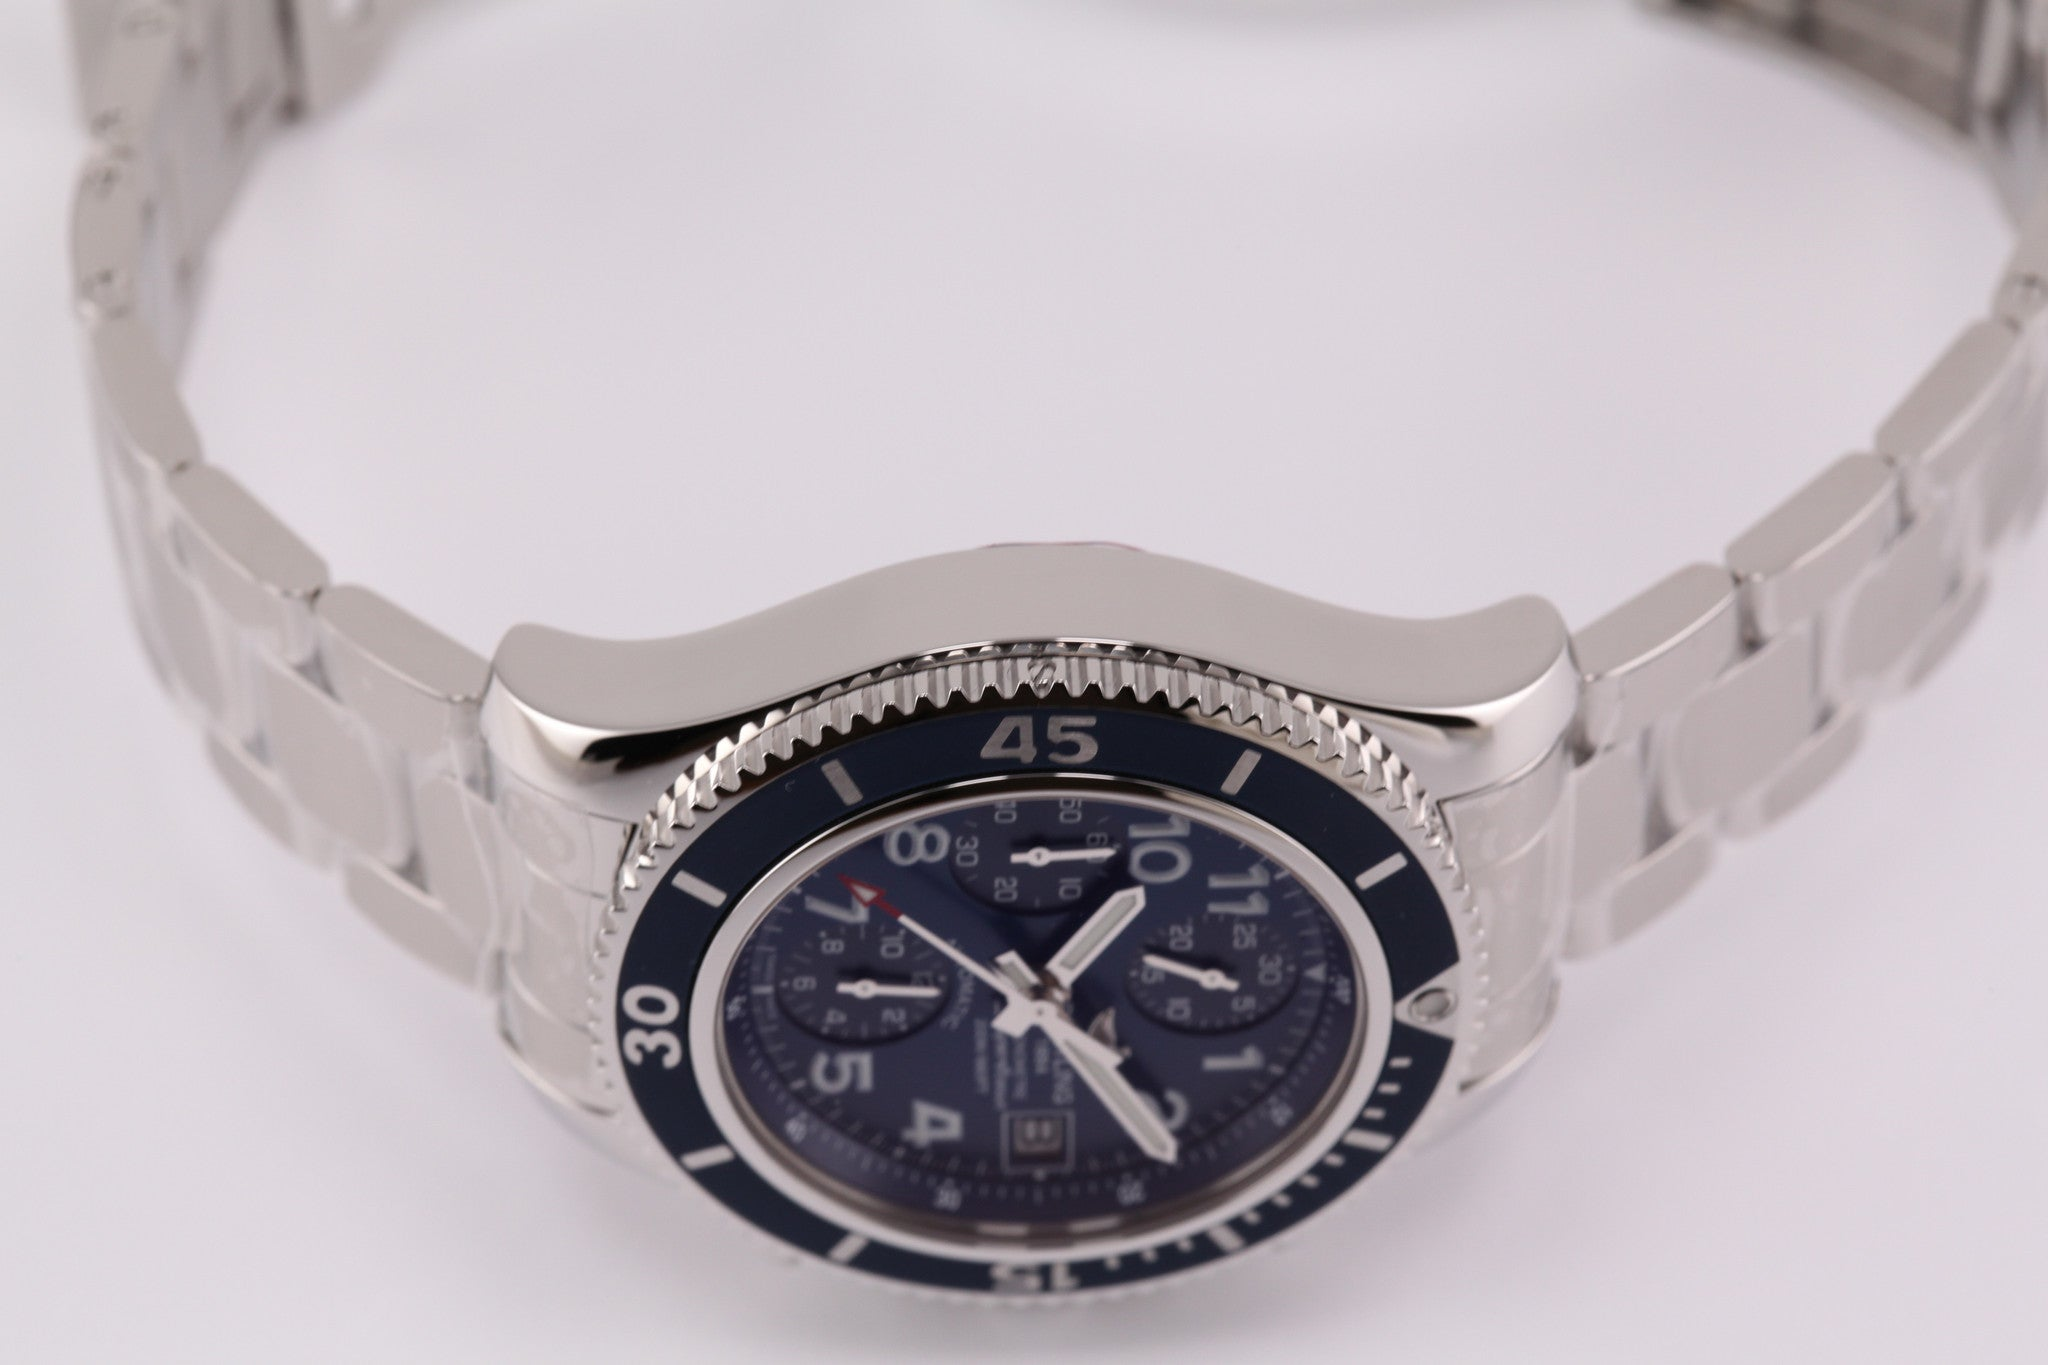 Breitling Superocean Chronograph Blue Dial (Independence Day Special)